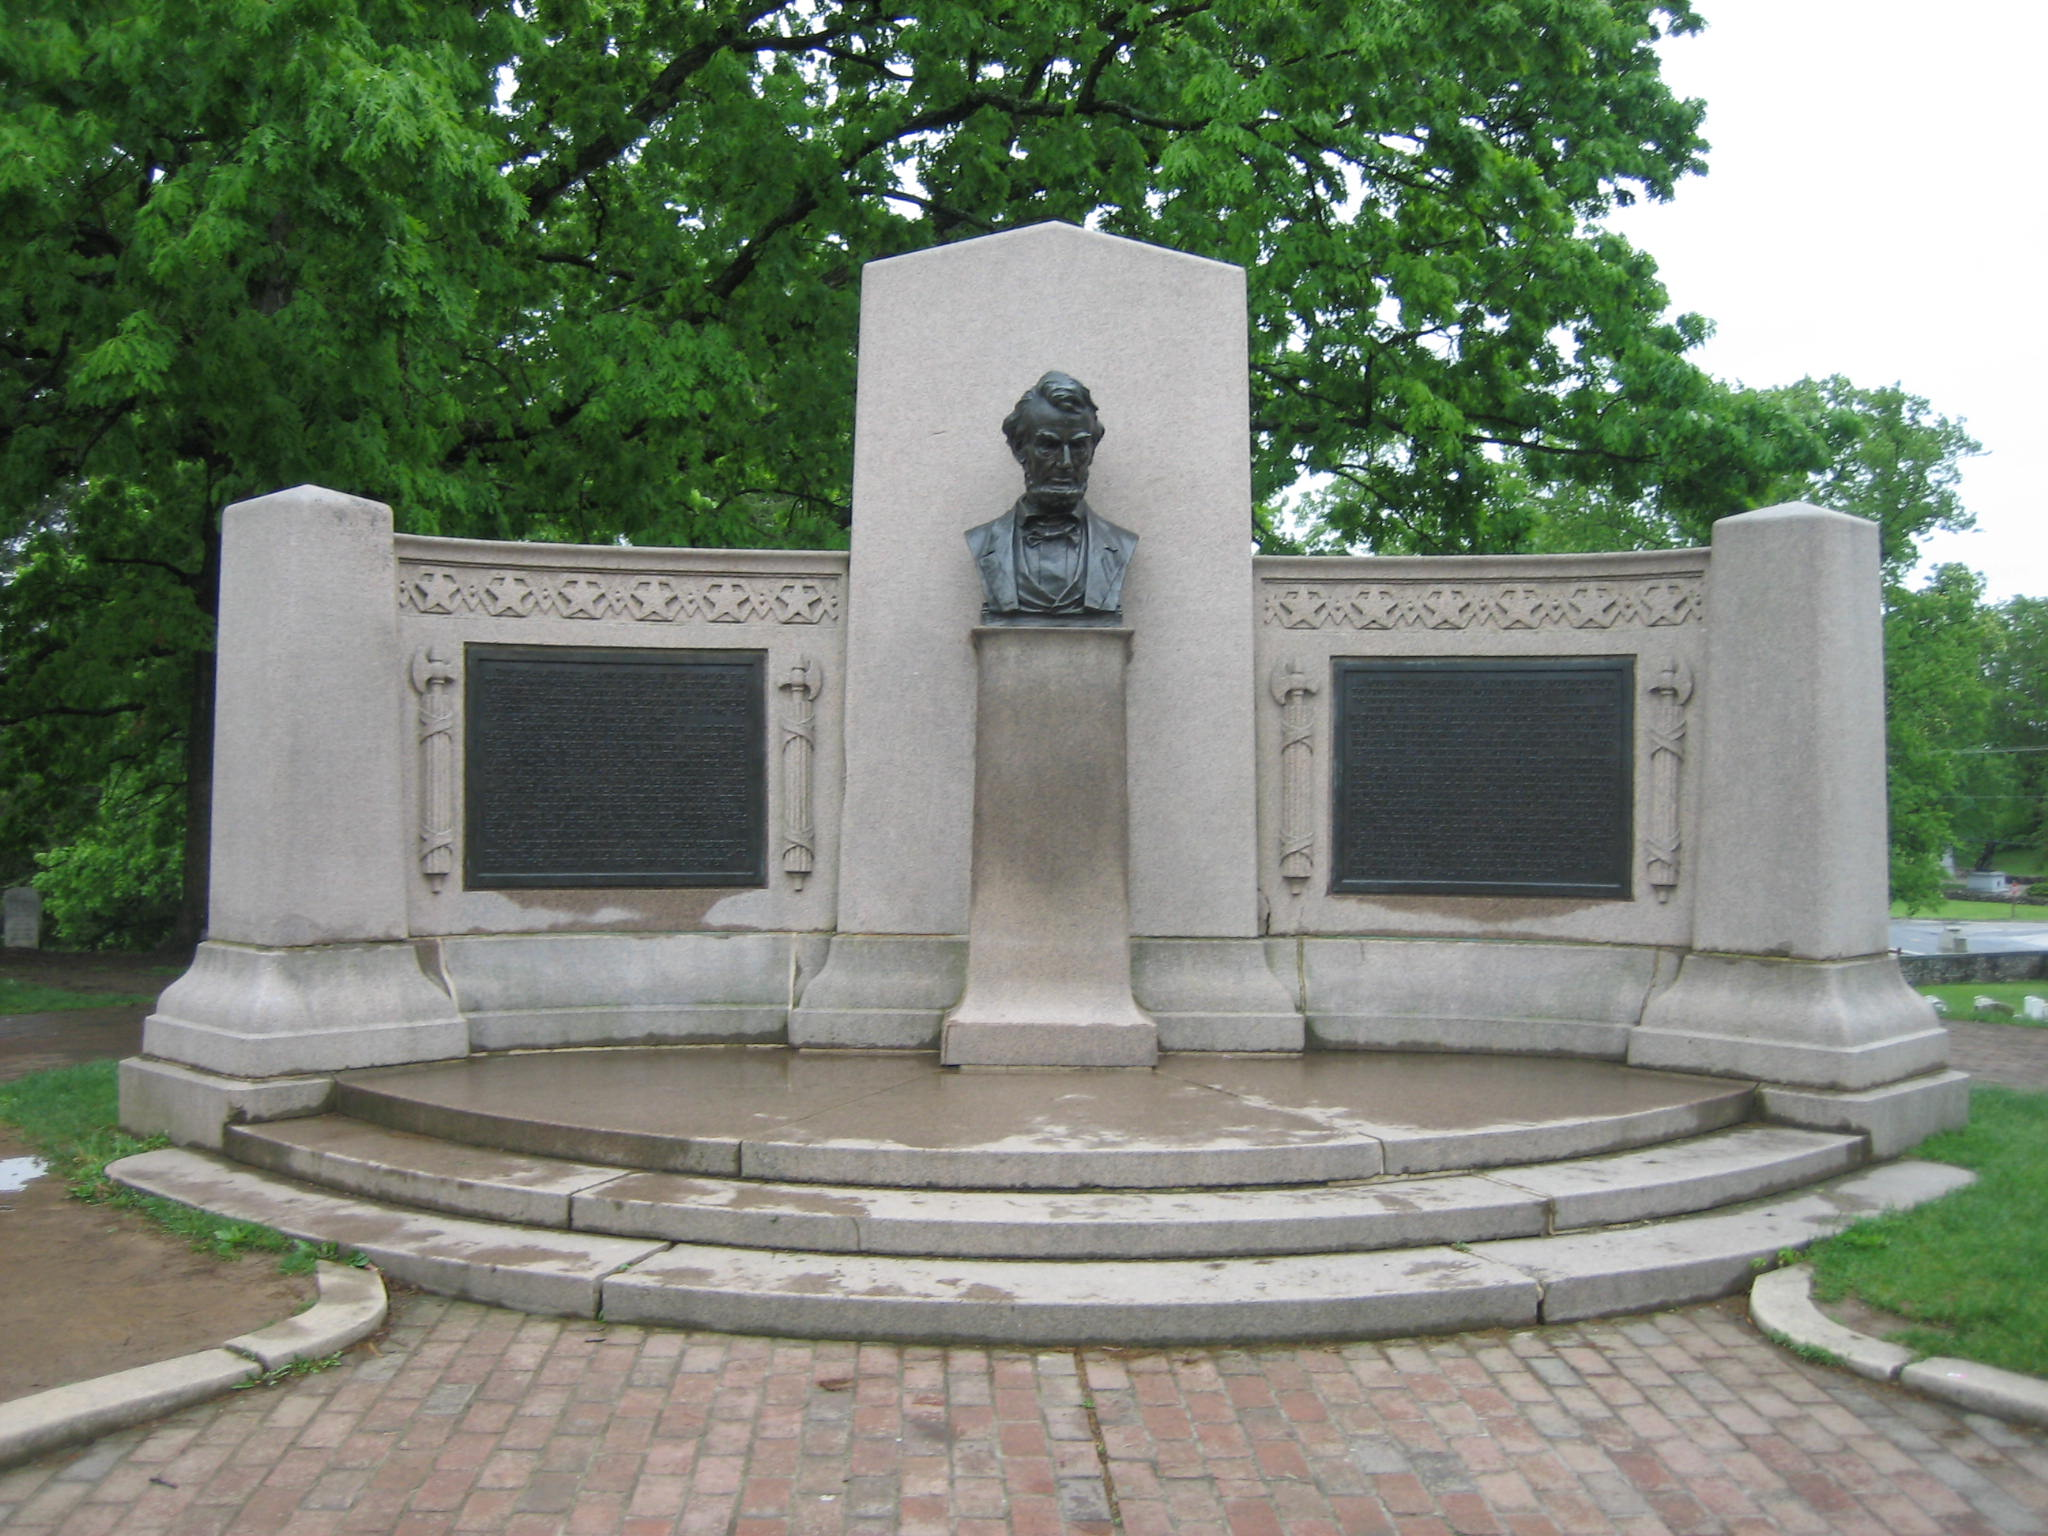 The Confusing Gettysburg Address Memorial Gettysburg Daily